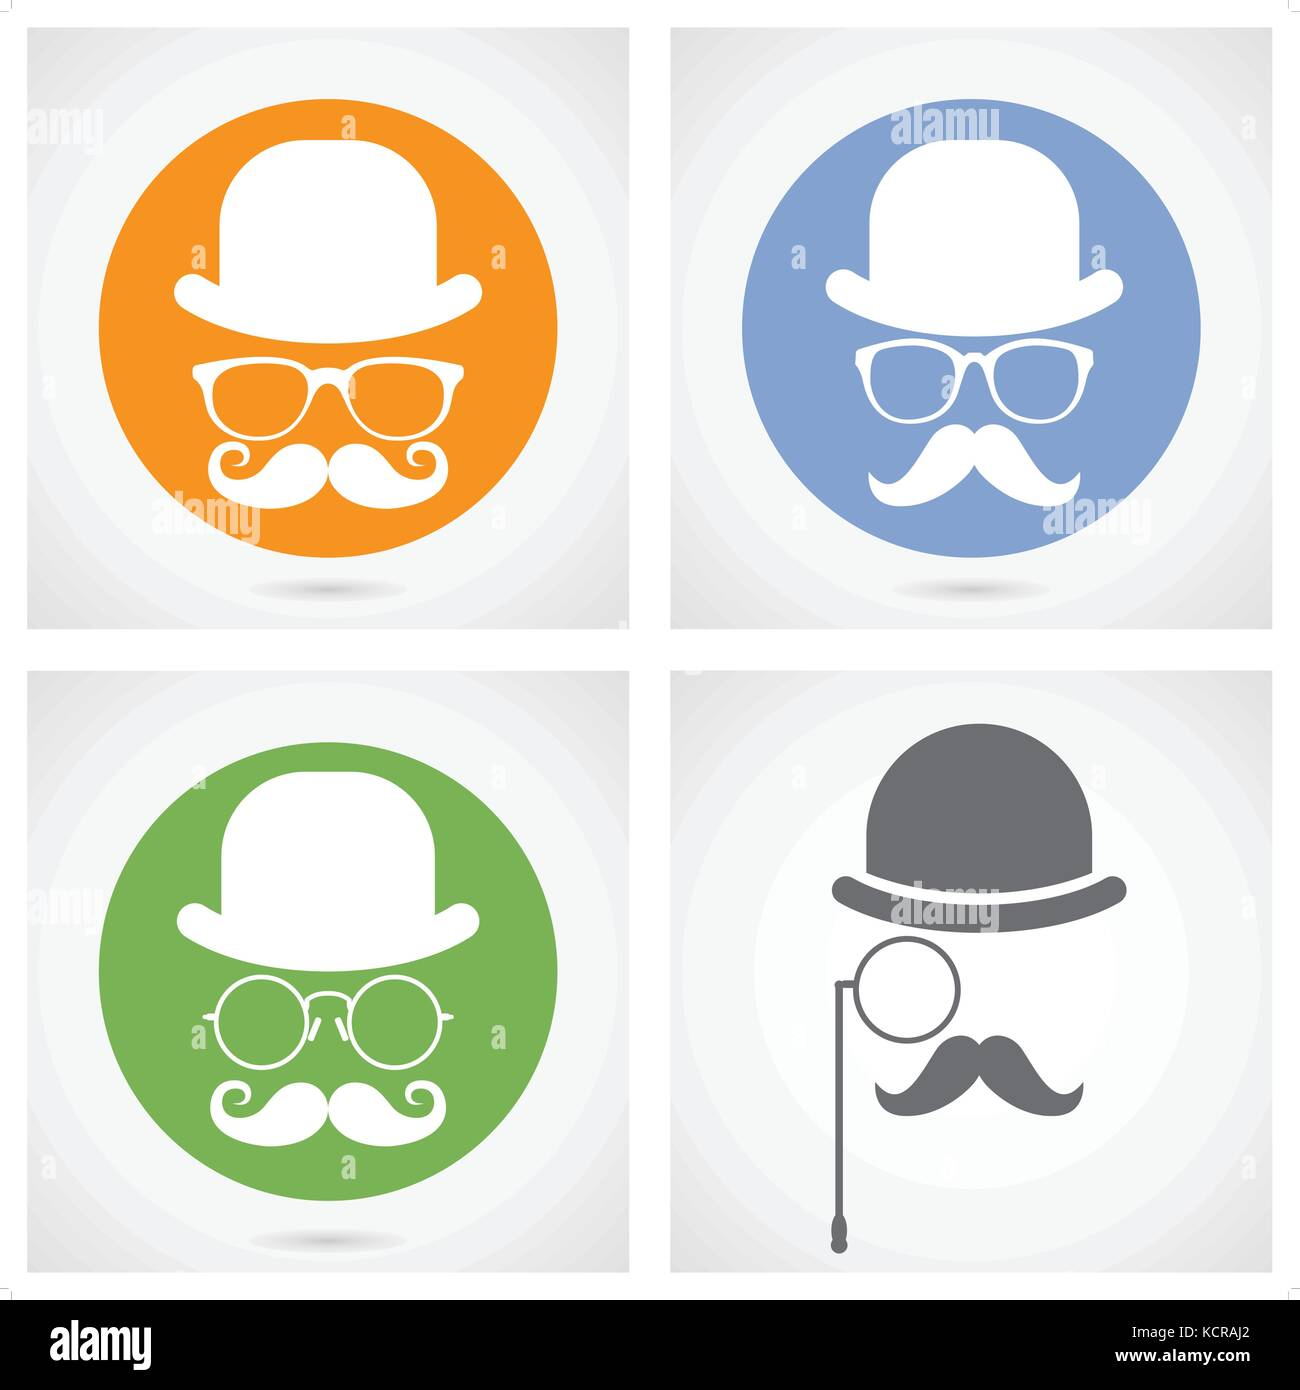 Silhouette of gentleman's face with moustaches, bowler and glasses - capitalist or hipster - Stock Image